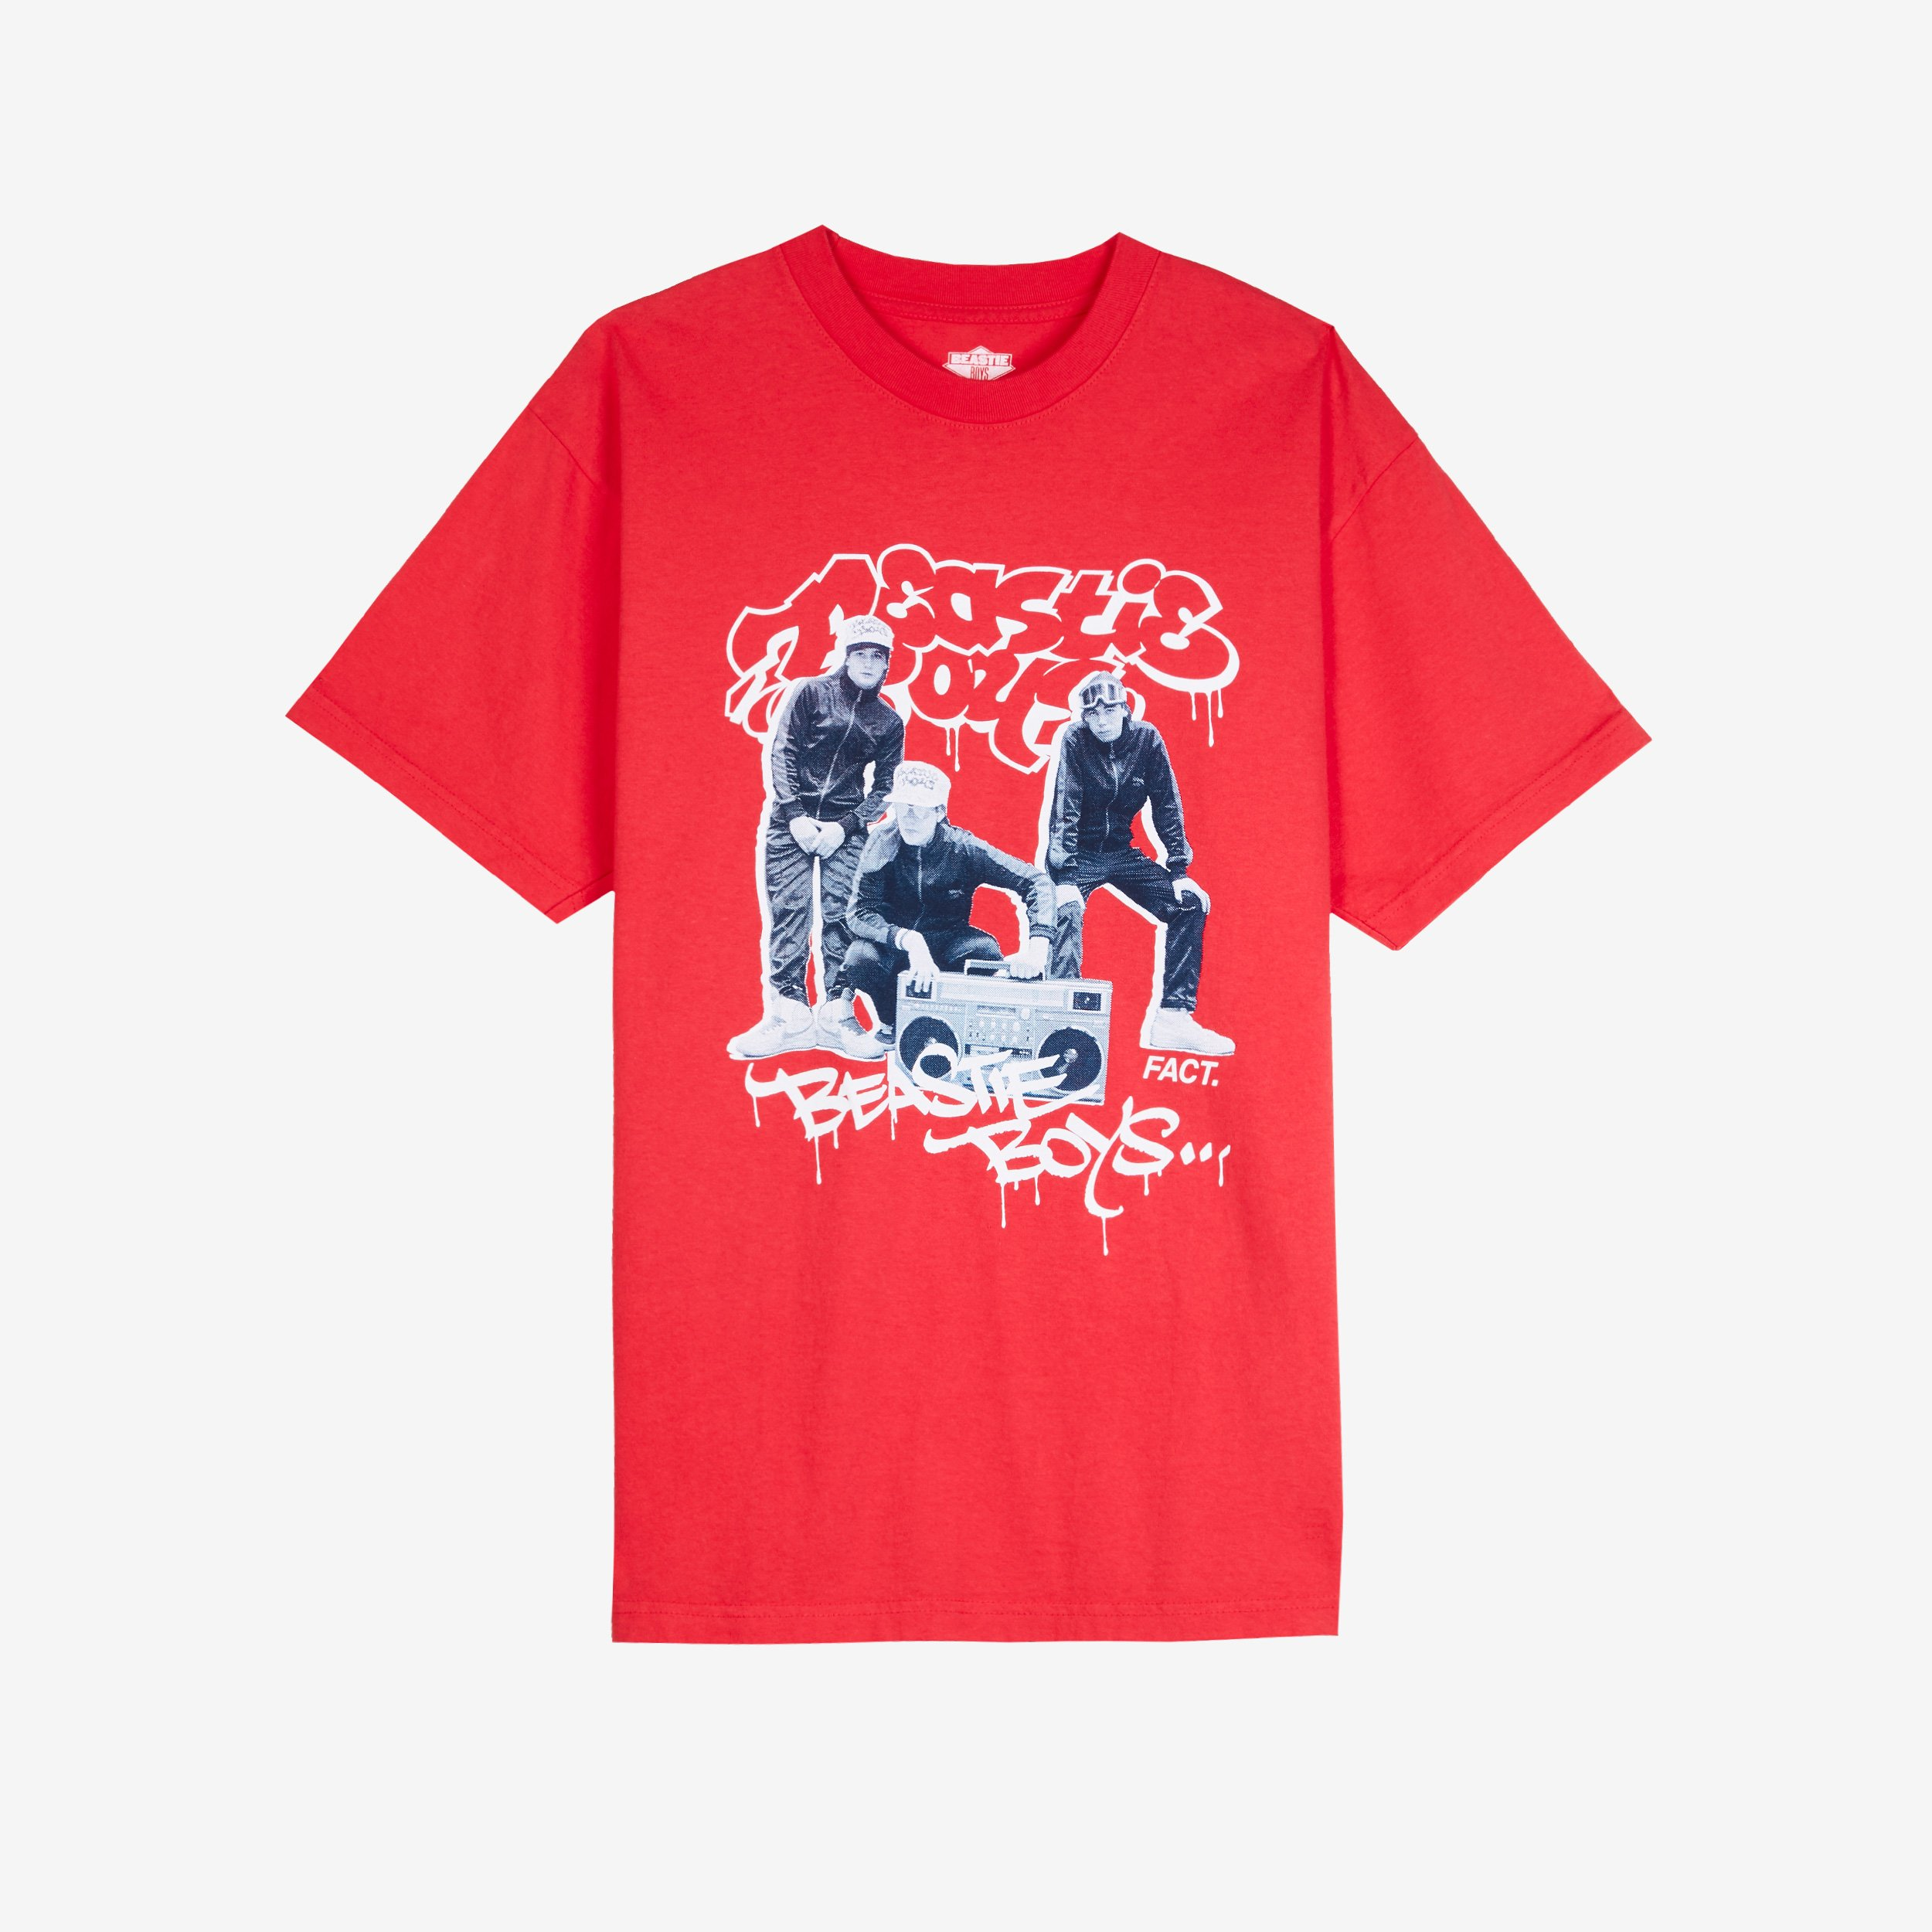 0d5a9080c FACT Bboys Short Sleeve T-Shirt - Bb-photo-ss-red - Sneakersnstuff ...